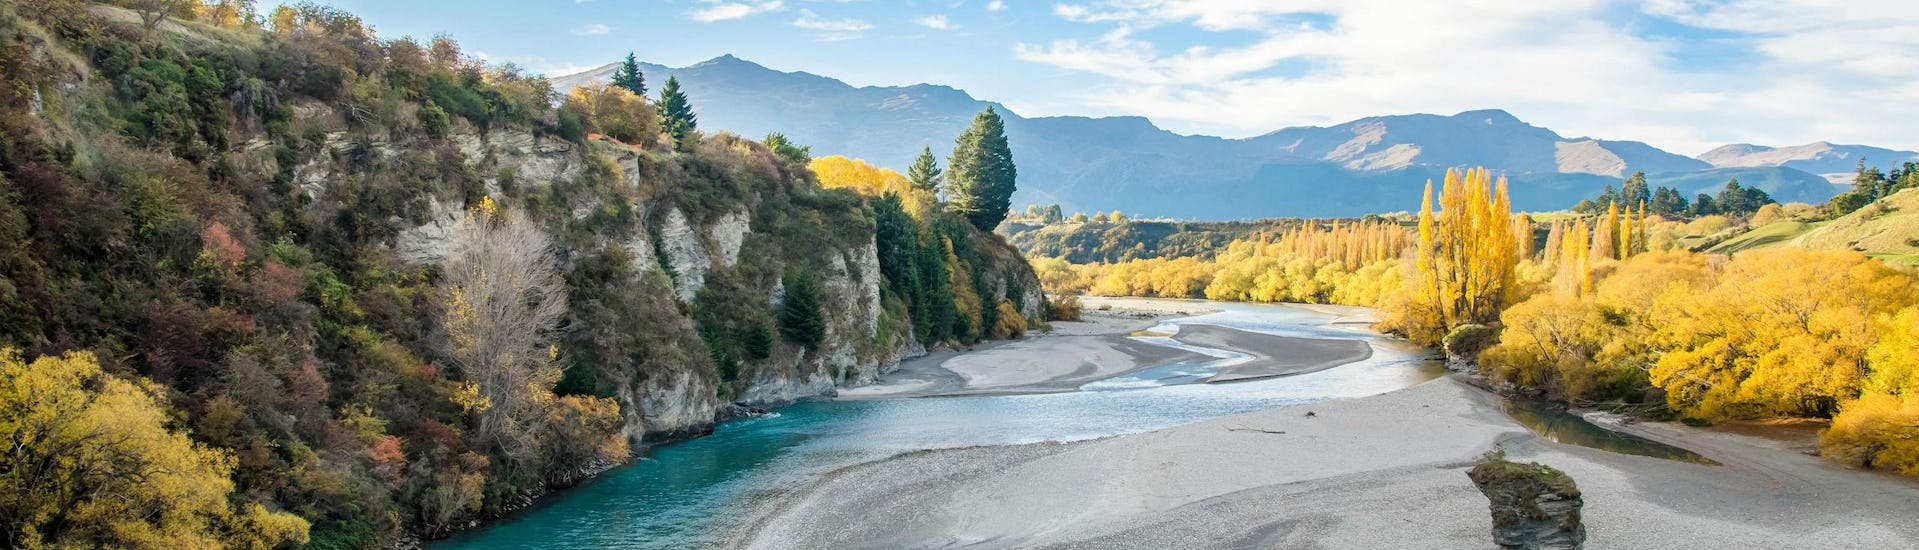 A view of the beautiful Shotover River that visitors paddle along when rafting in Queenstown.